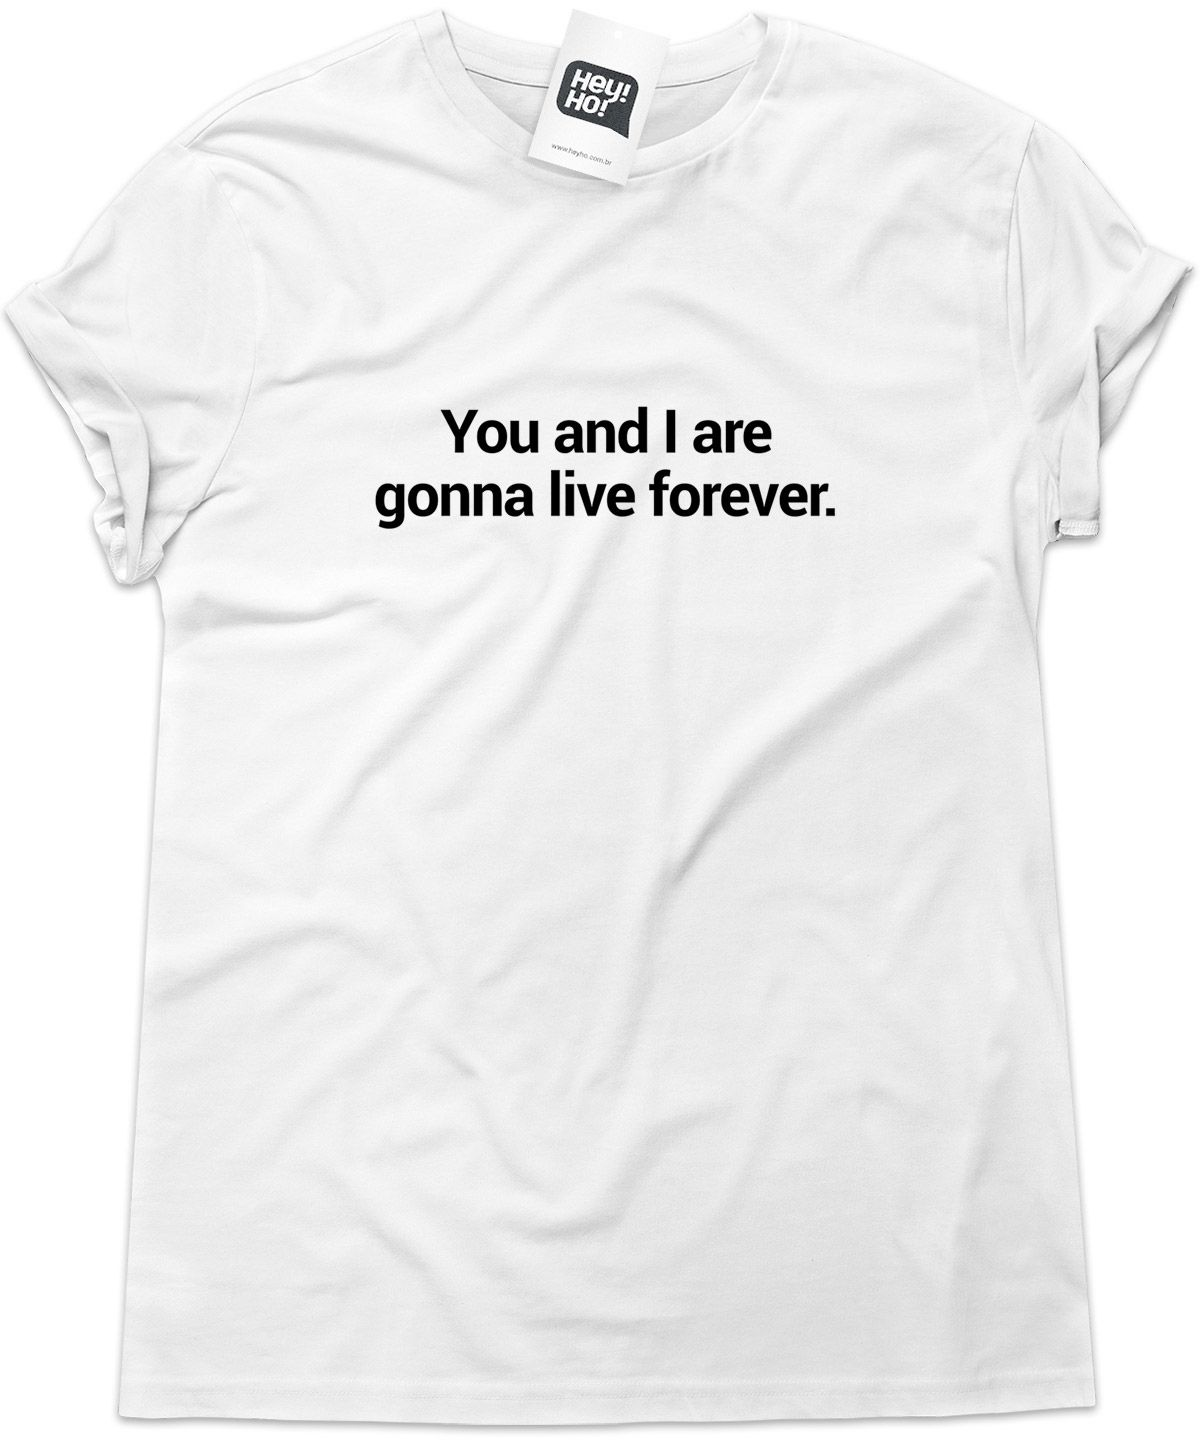 OASIS - You and I are gonna live forever